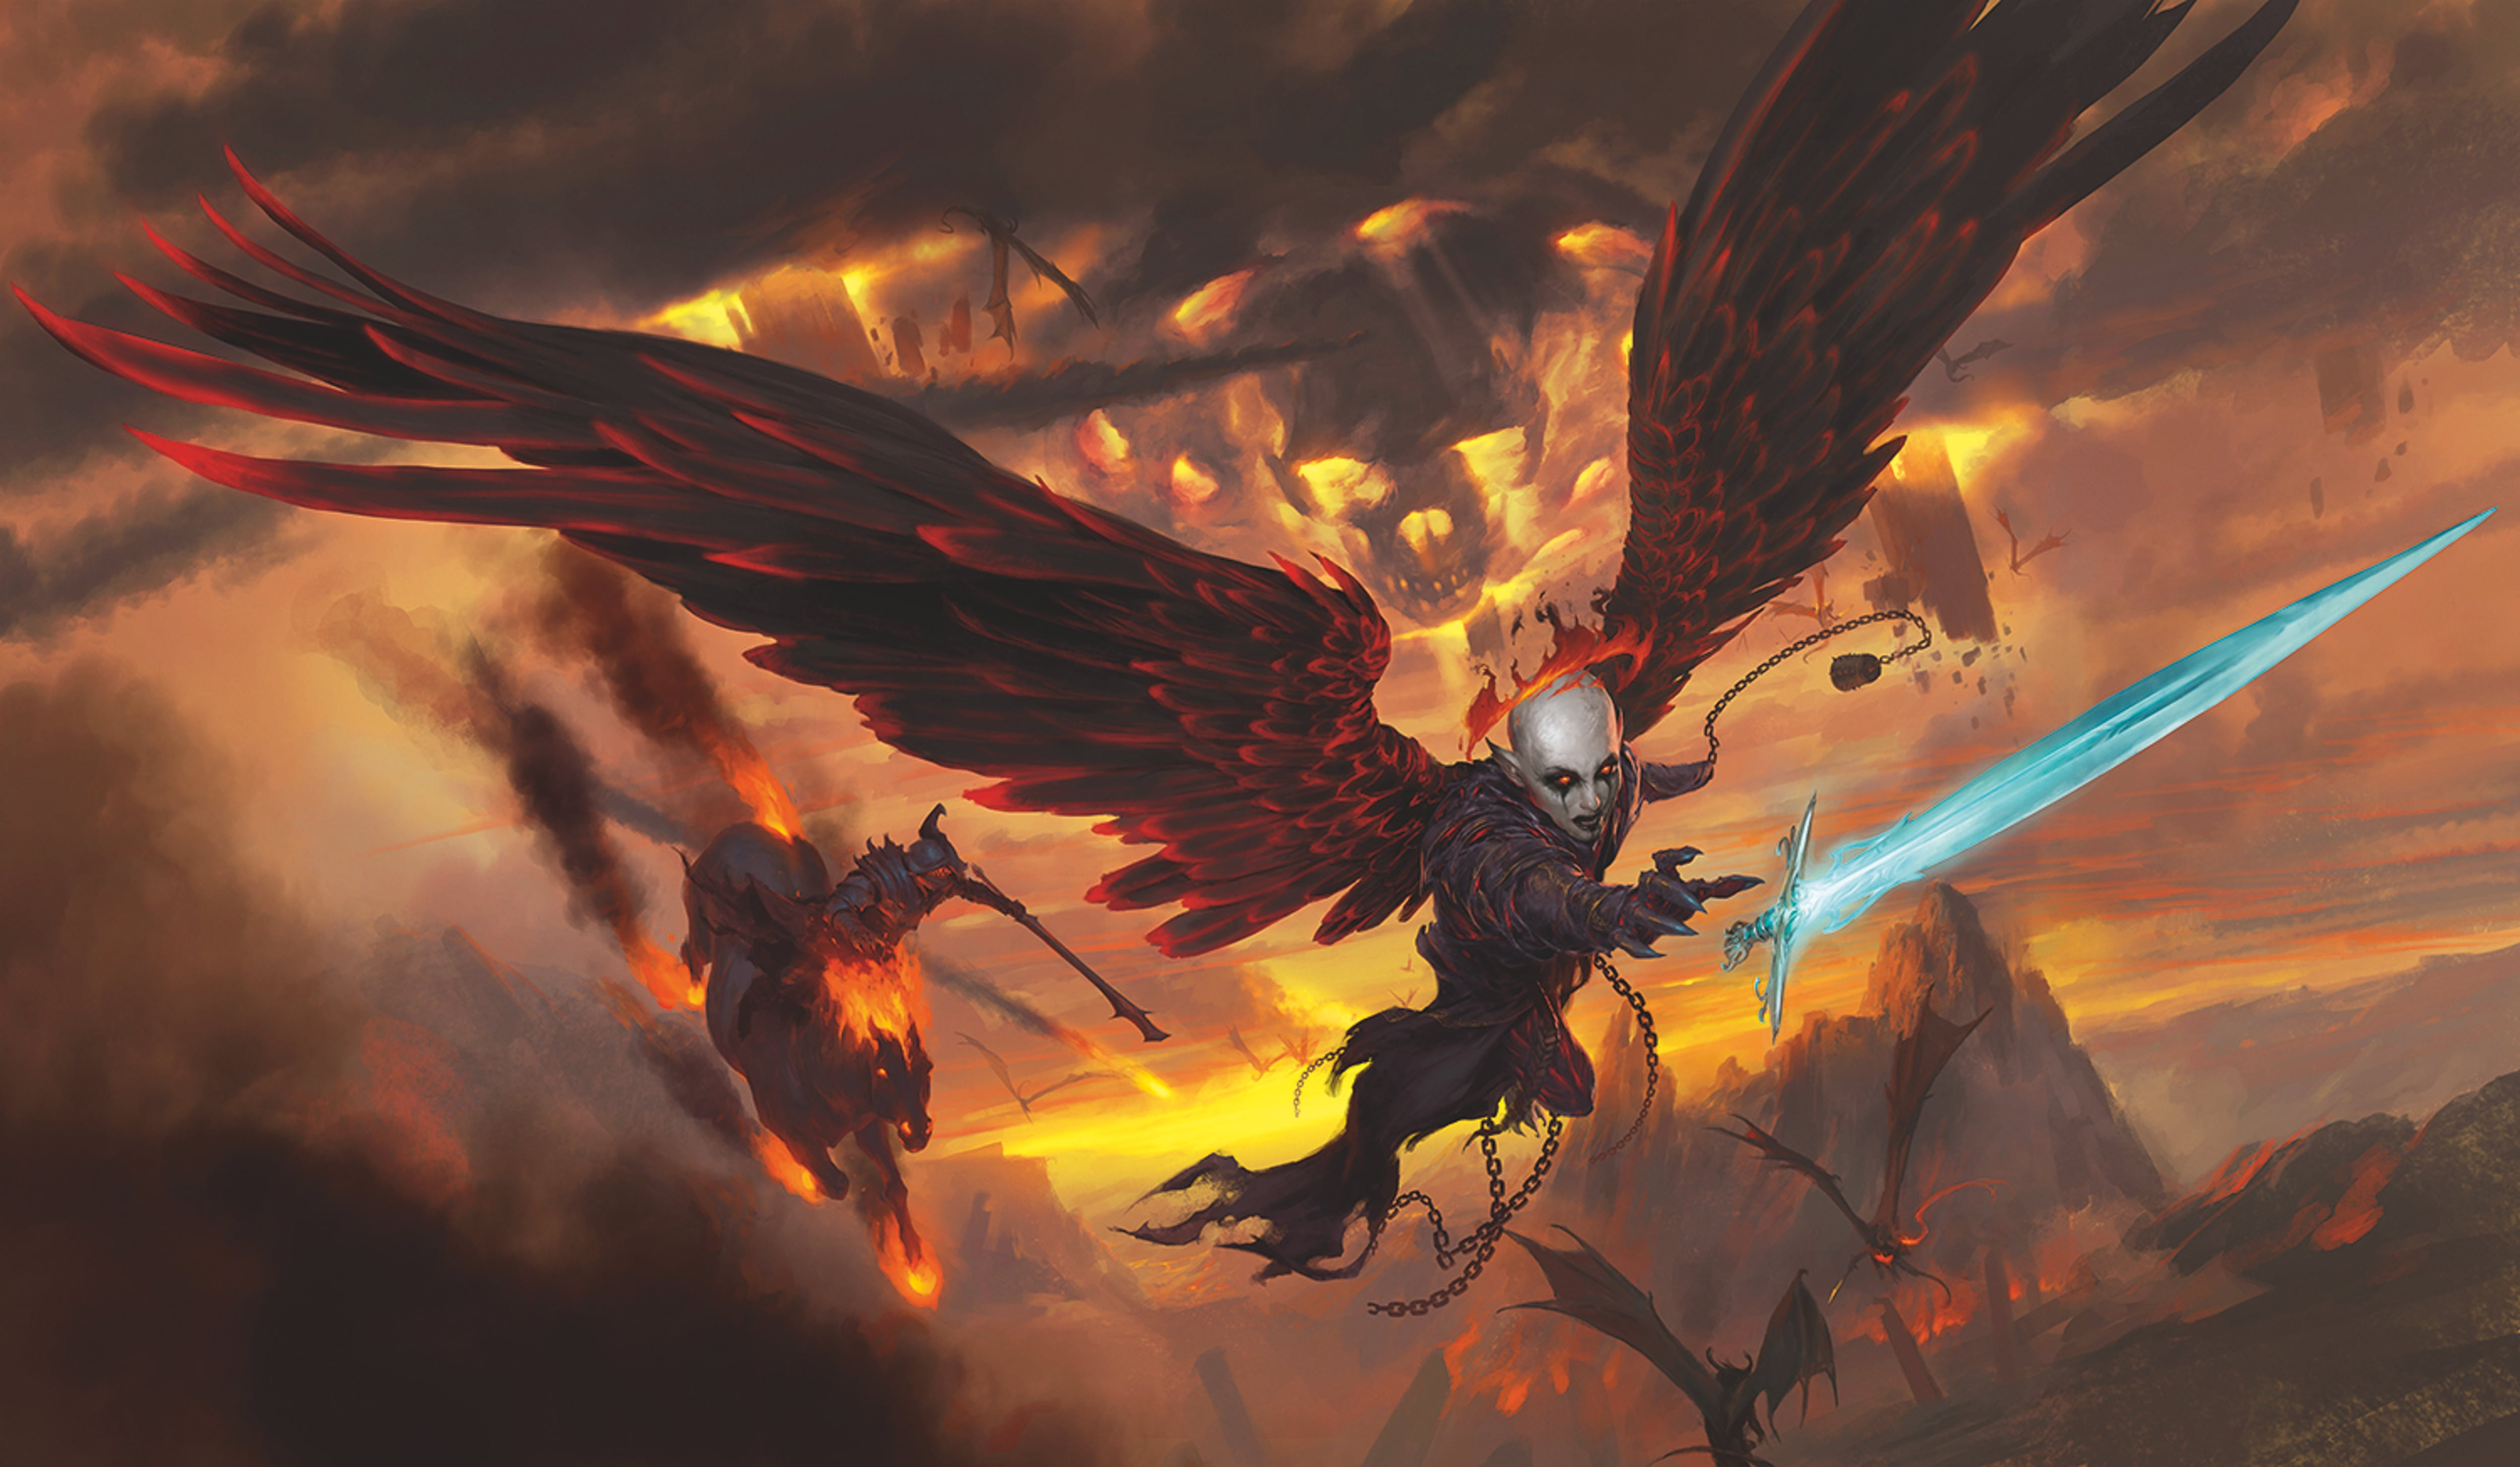 Key art for the Dungeons & Dragons adventure Baldur's Gate: Descent into Avernus, featuring a winged character flying through an apocalyptic eye, reaching for an icy sword.